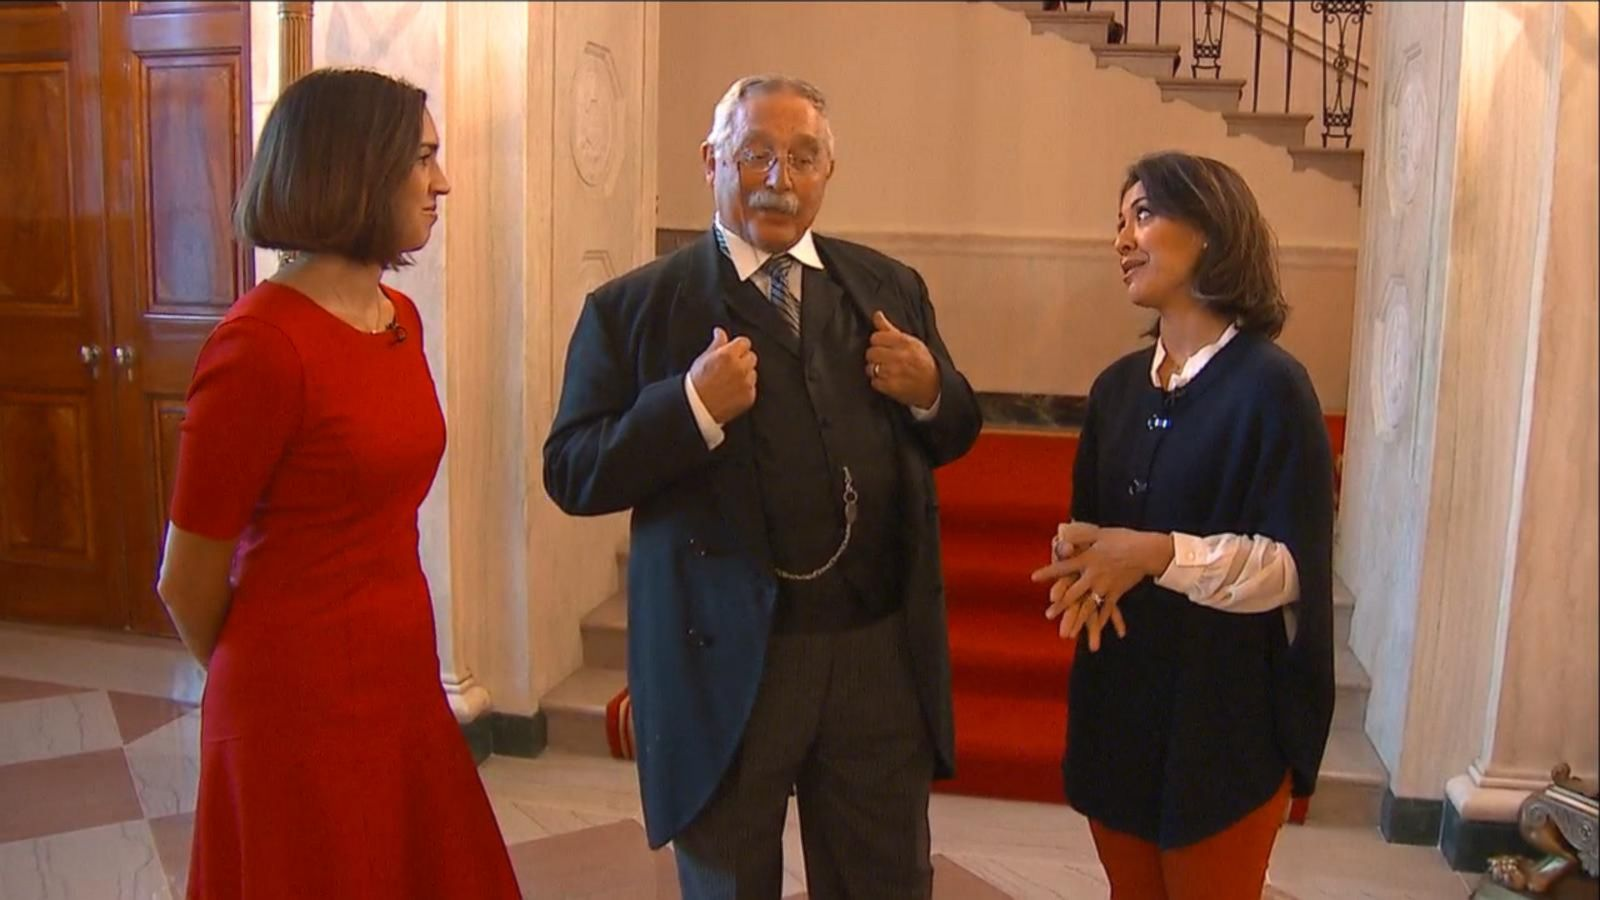 VIDEO: Ghost of Theodore Roosevelt Haunts the White House in Ghost Tour